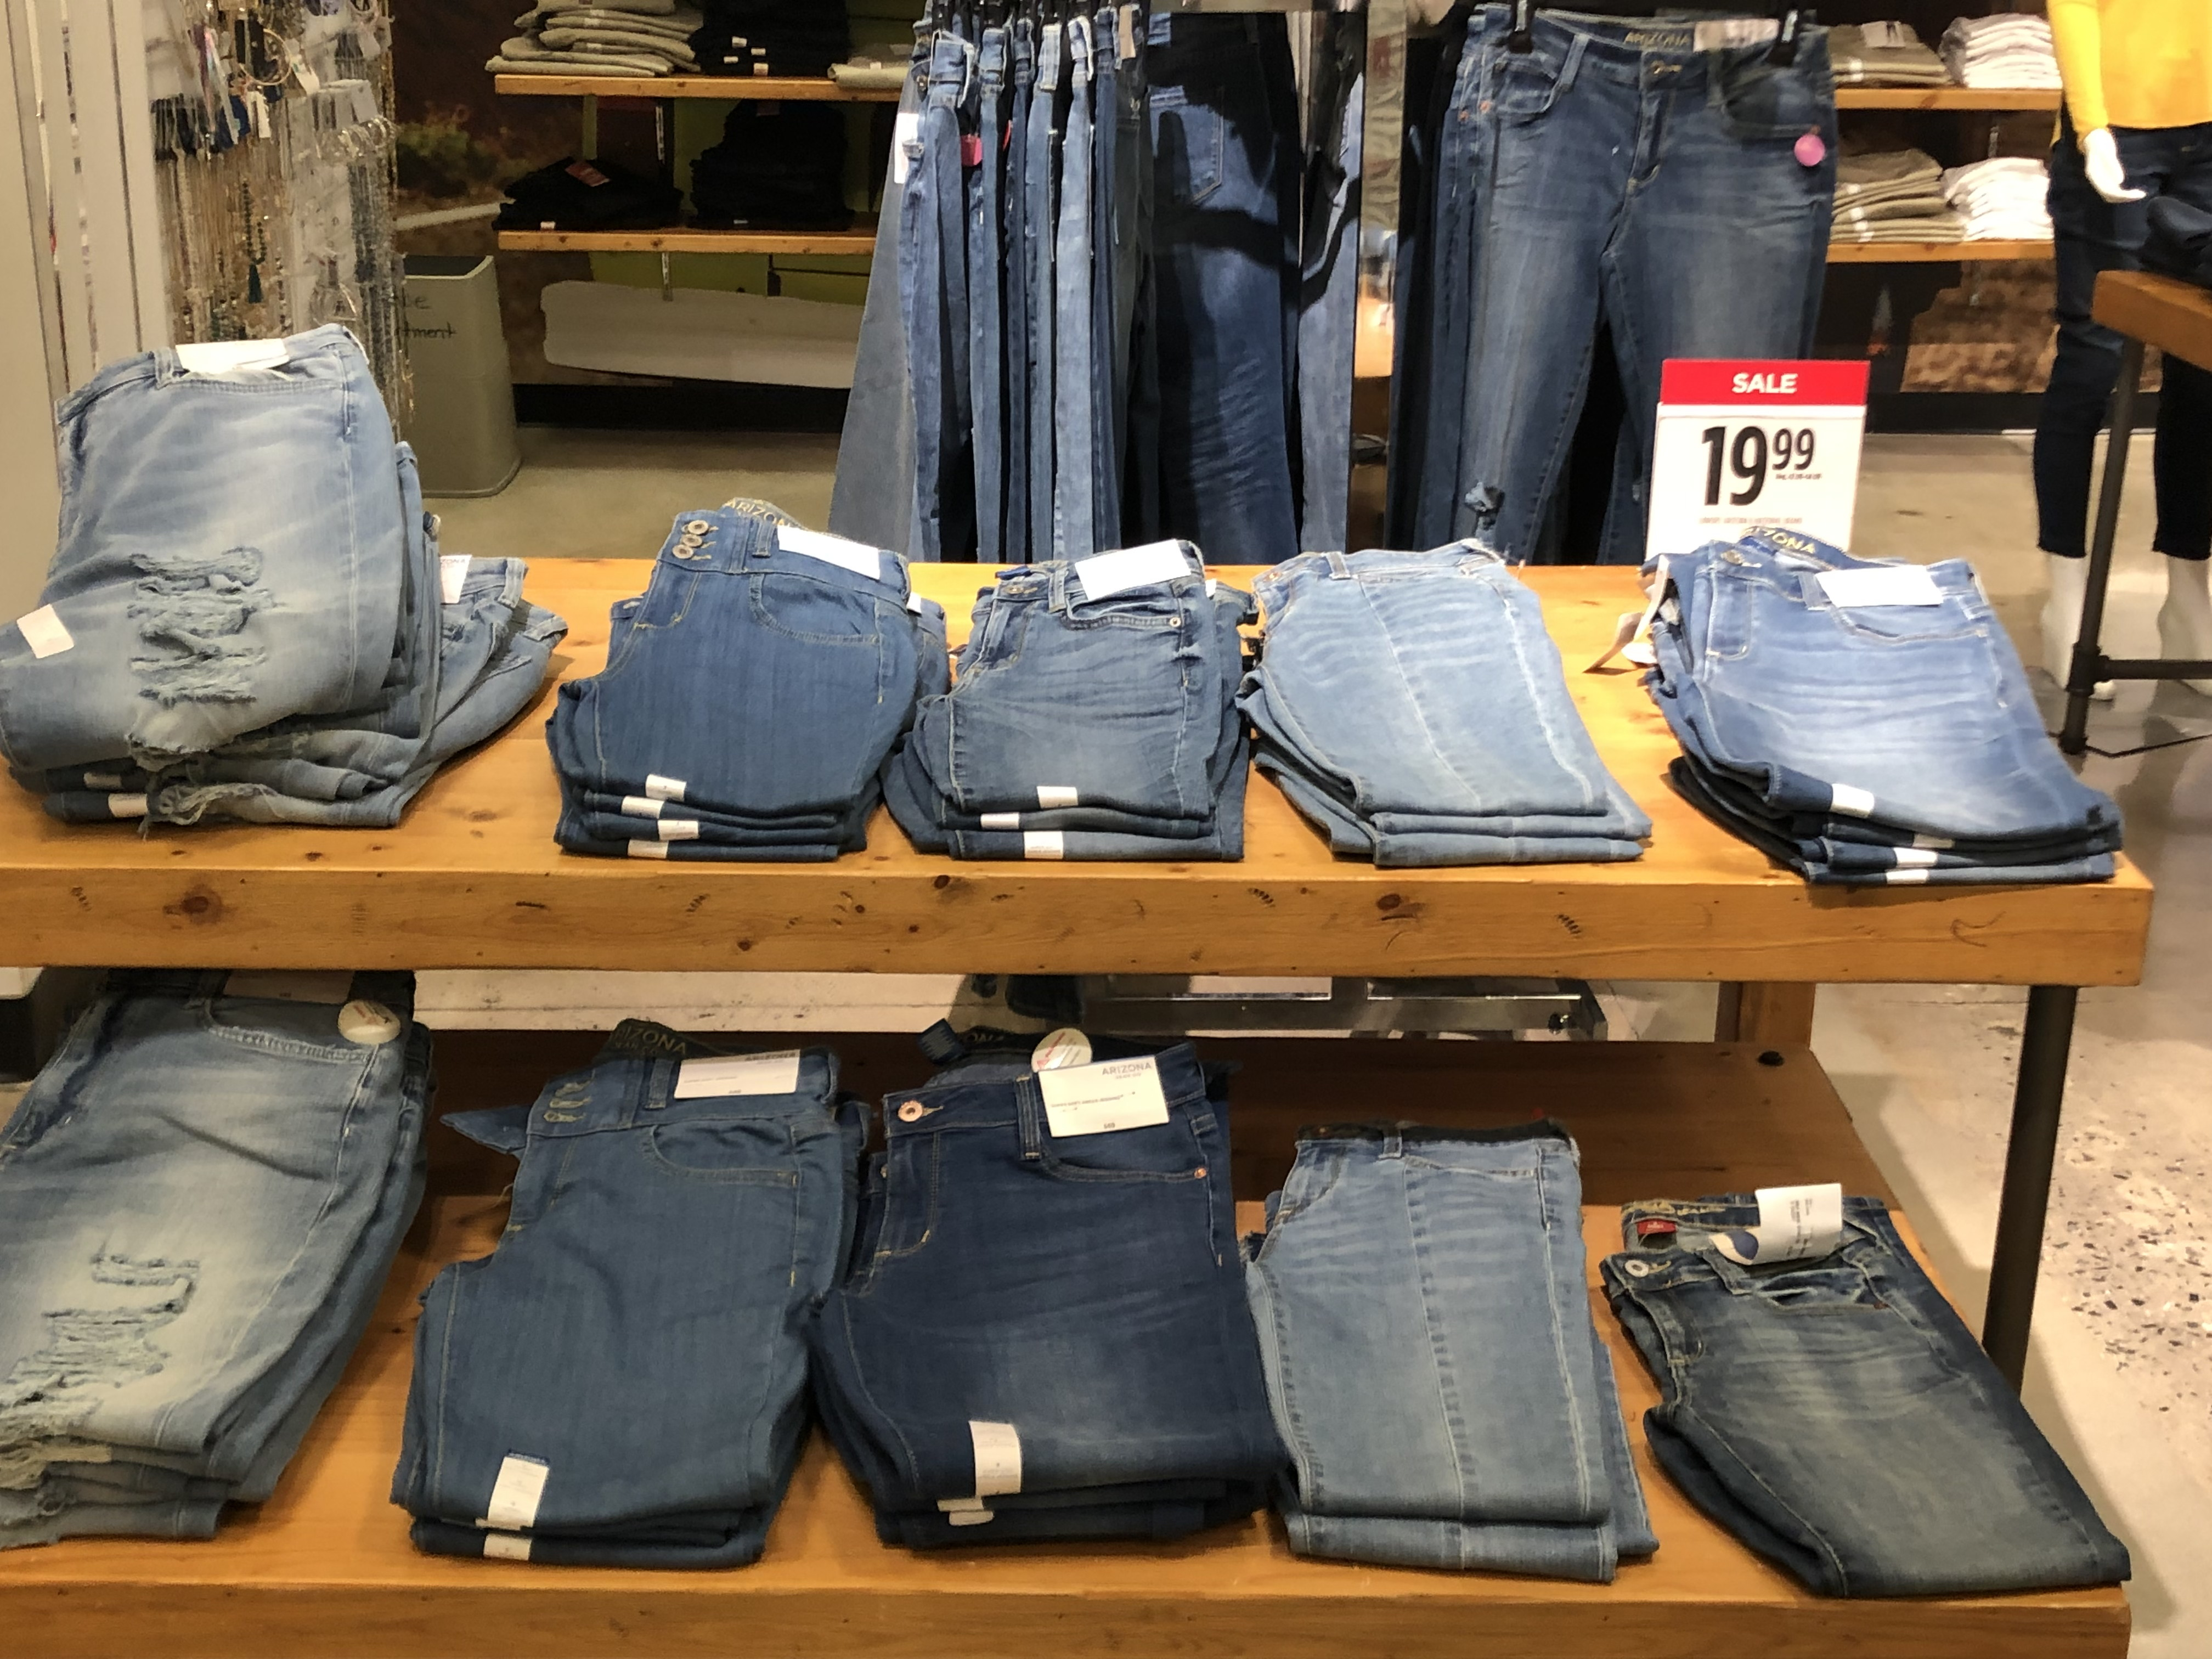 ccd5d54ca4 Arizona Jeans for Juniors, $16 at JCPenney! - The Krazy Coupon Lady